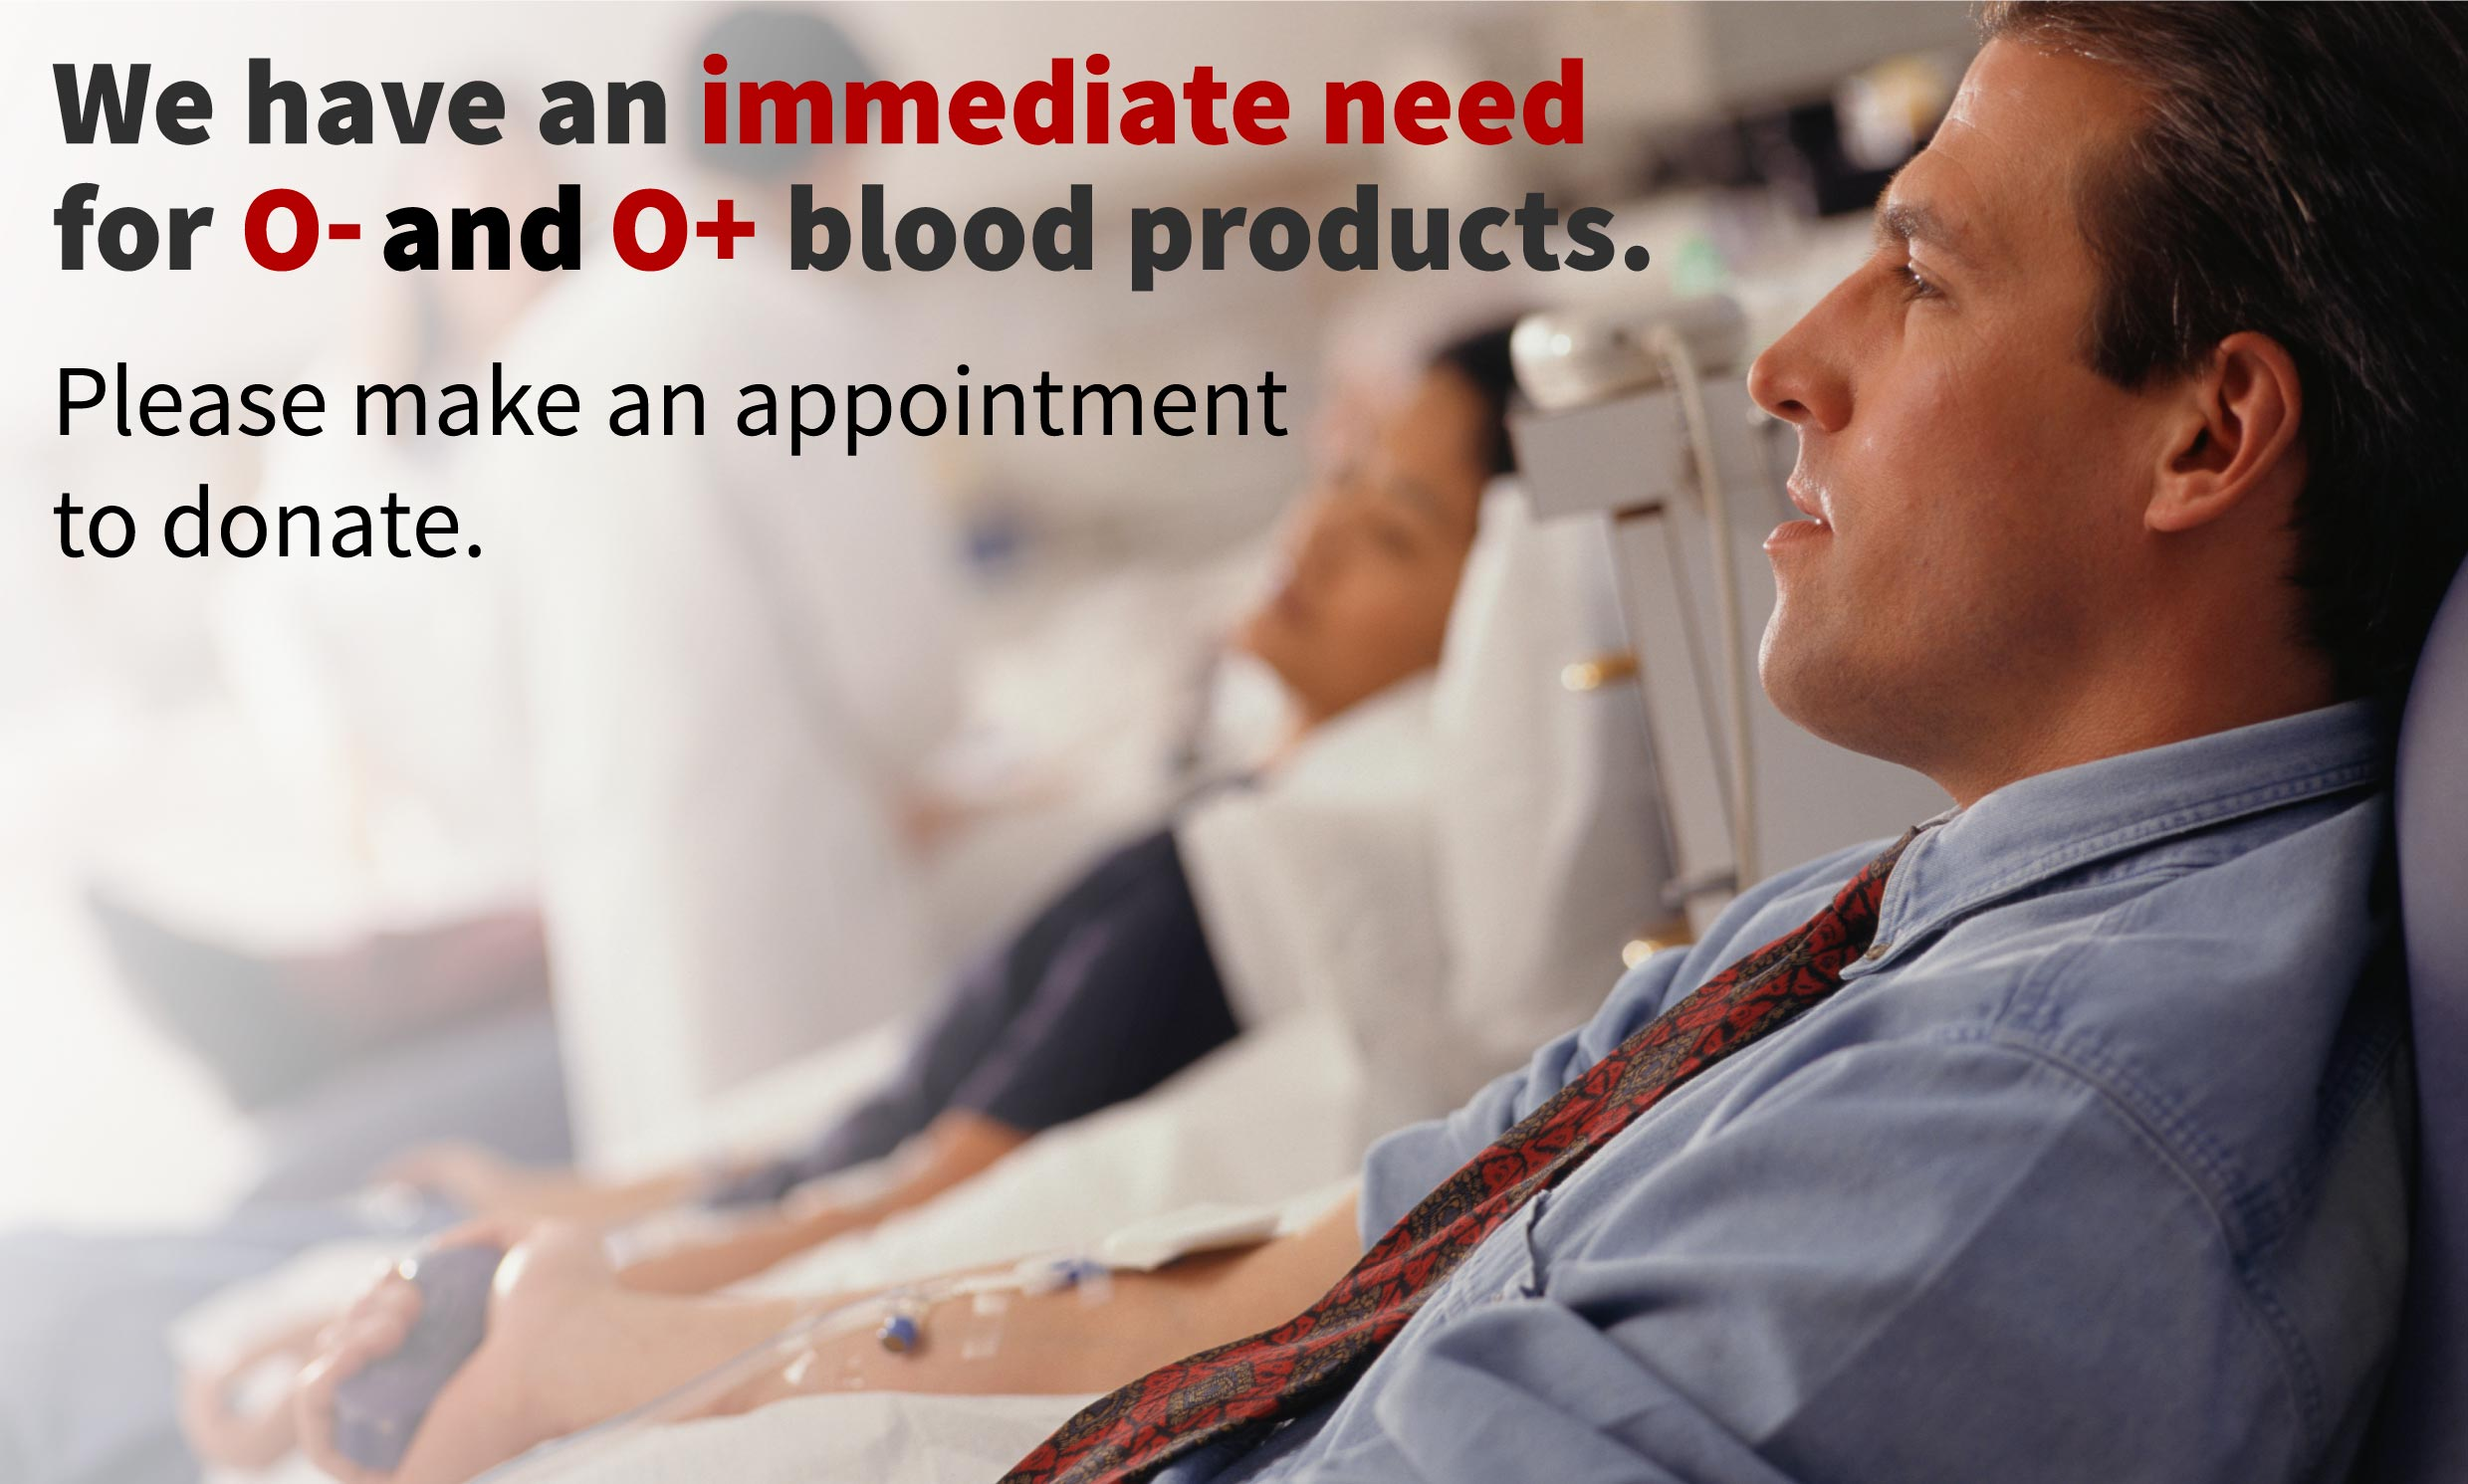 We have a summer blood need for O- and O+ blood products